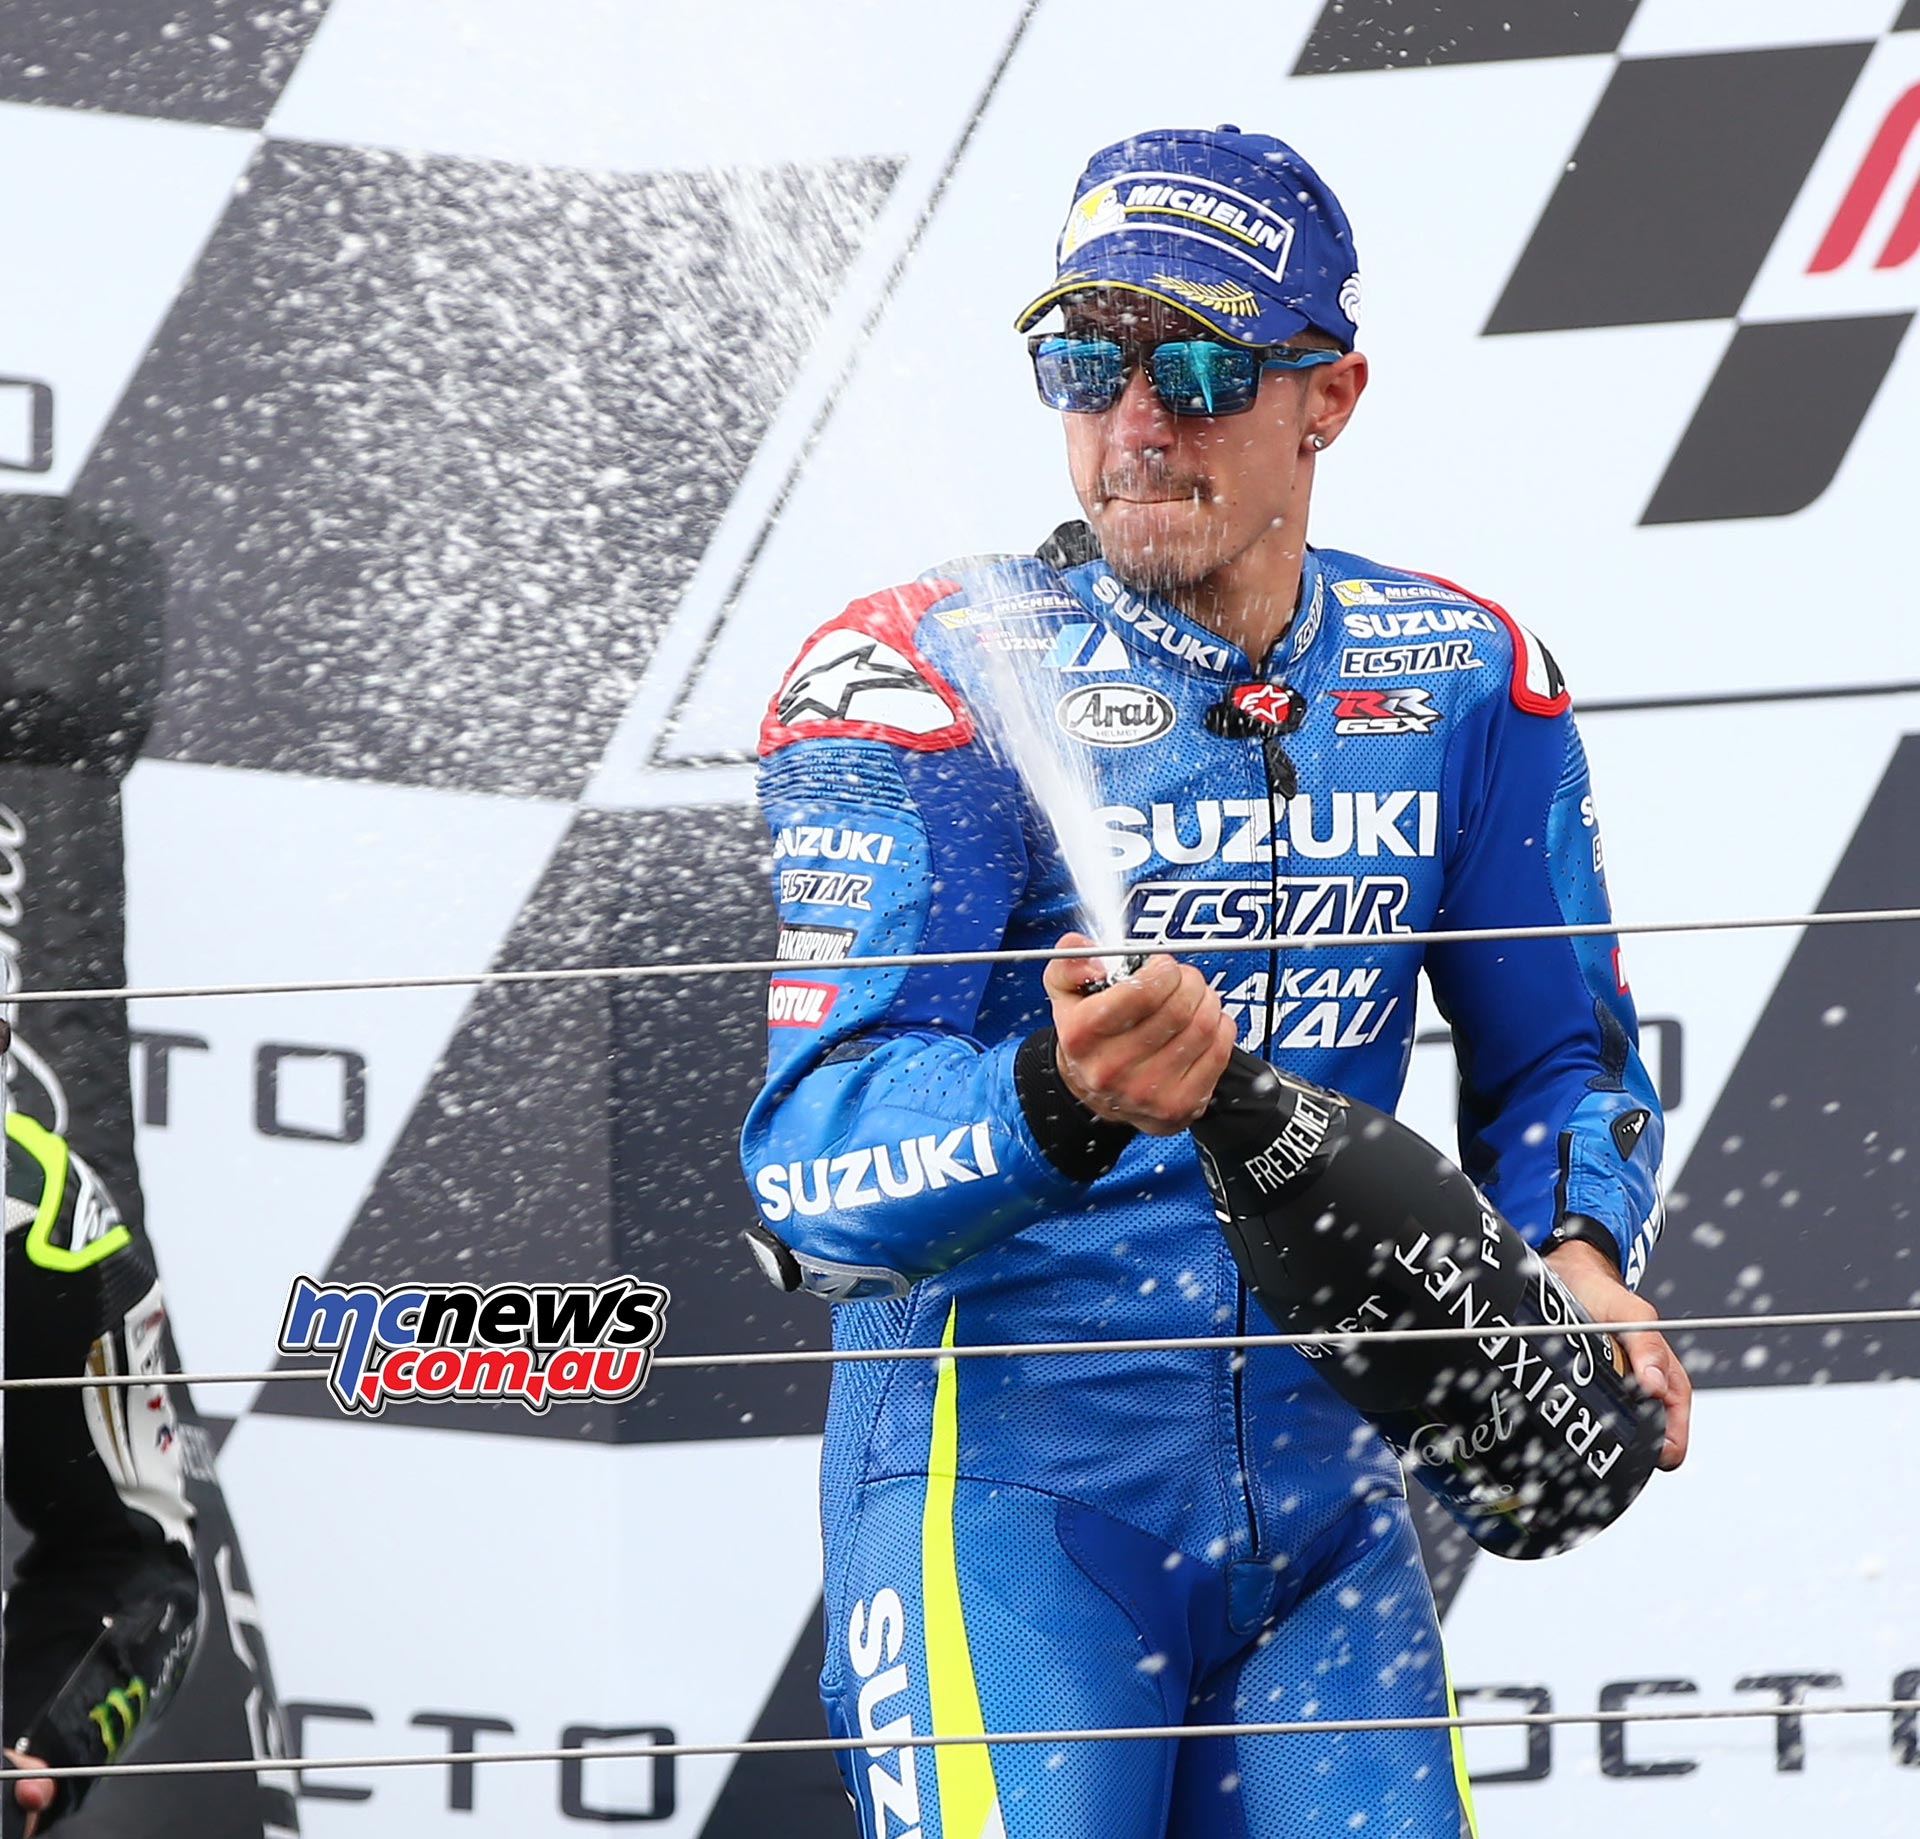 Maverik Vinales sprays the champagne at Silverstone in 2016 after taking Suzuki's first victory in almost a decade. Image by AJRN